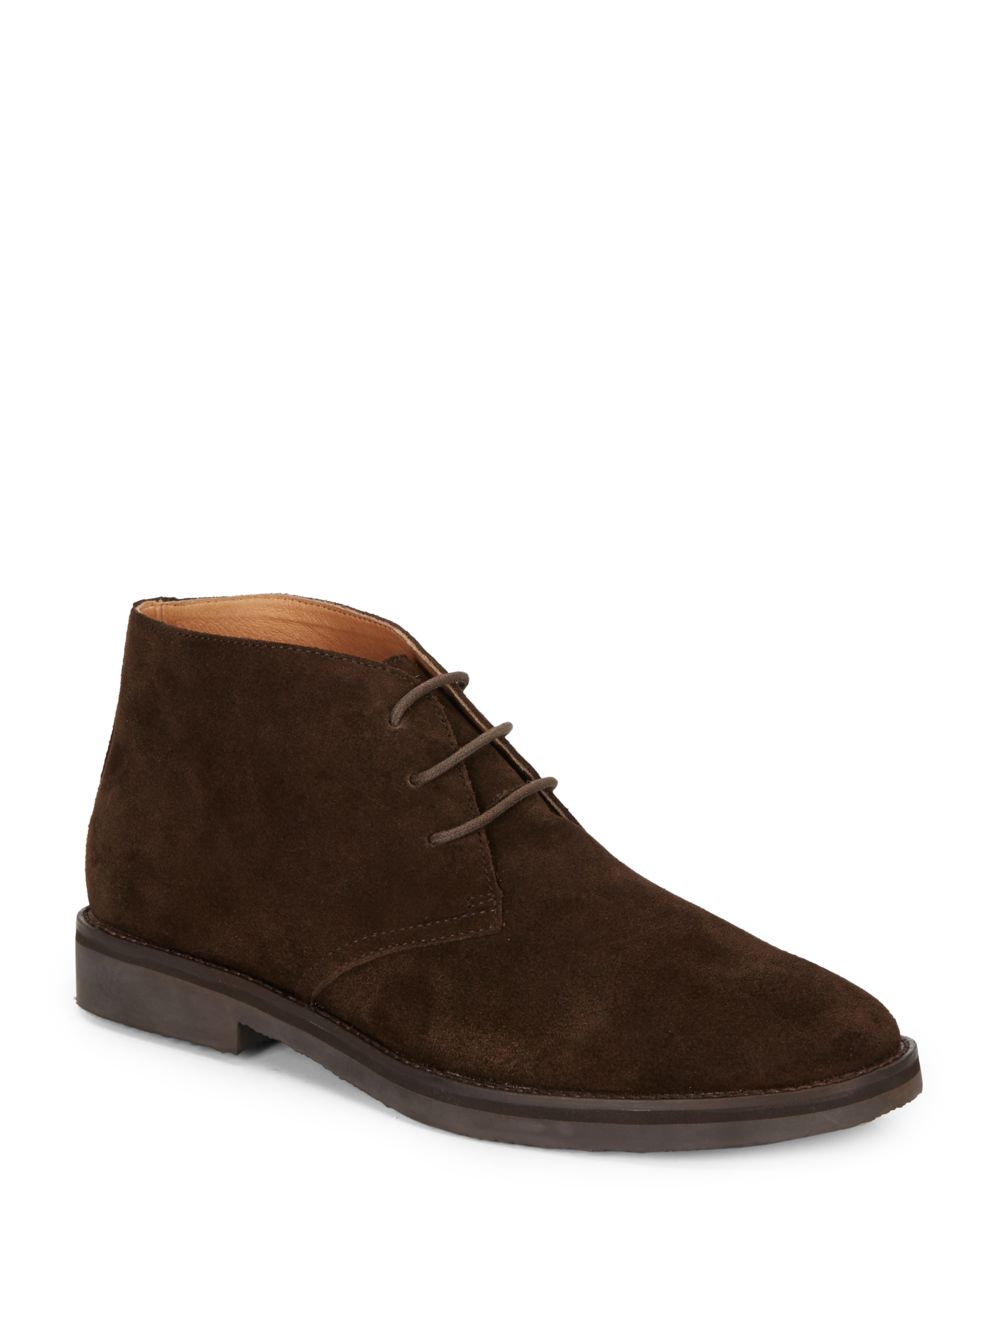 saks fifth avenue plain toe suede chukka boots in brown